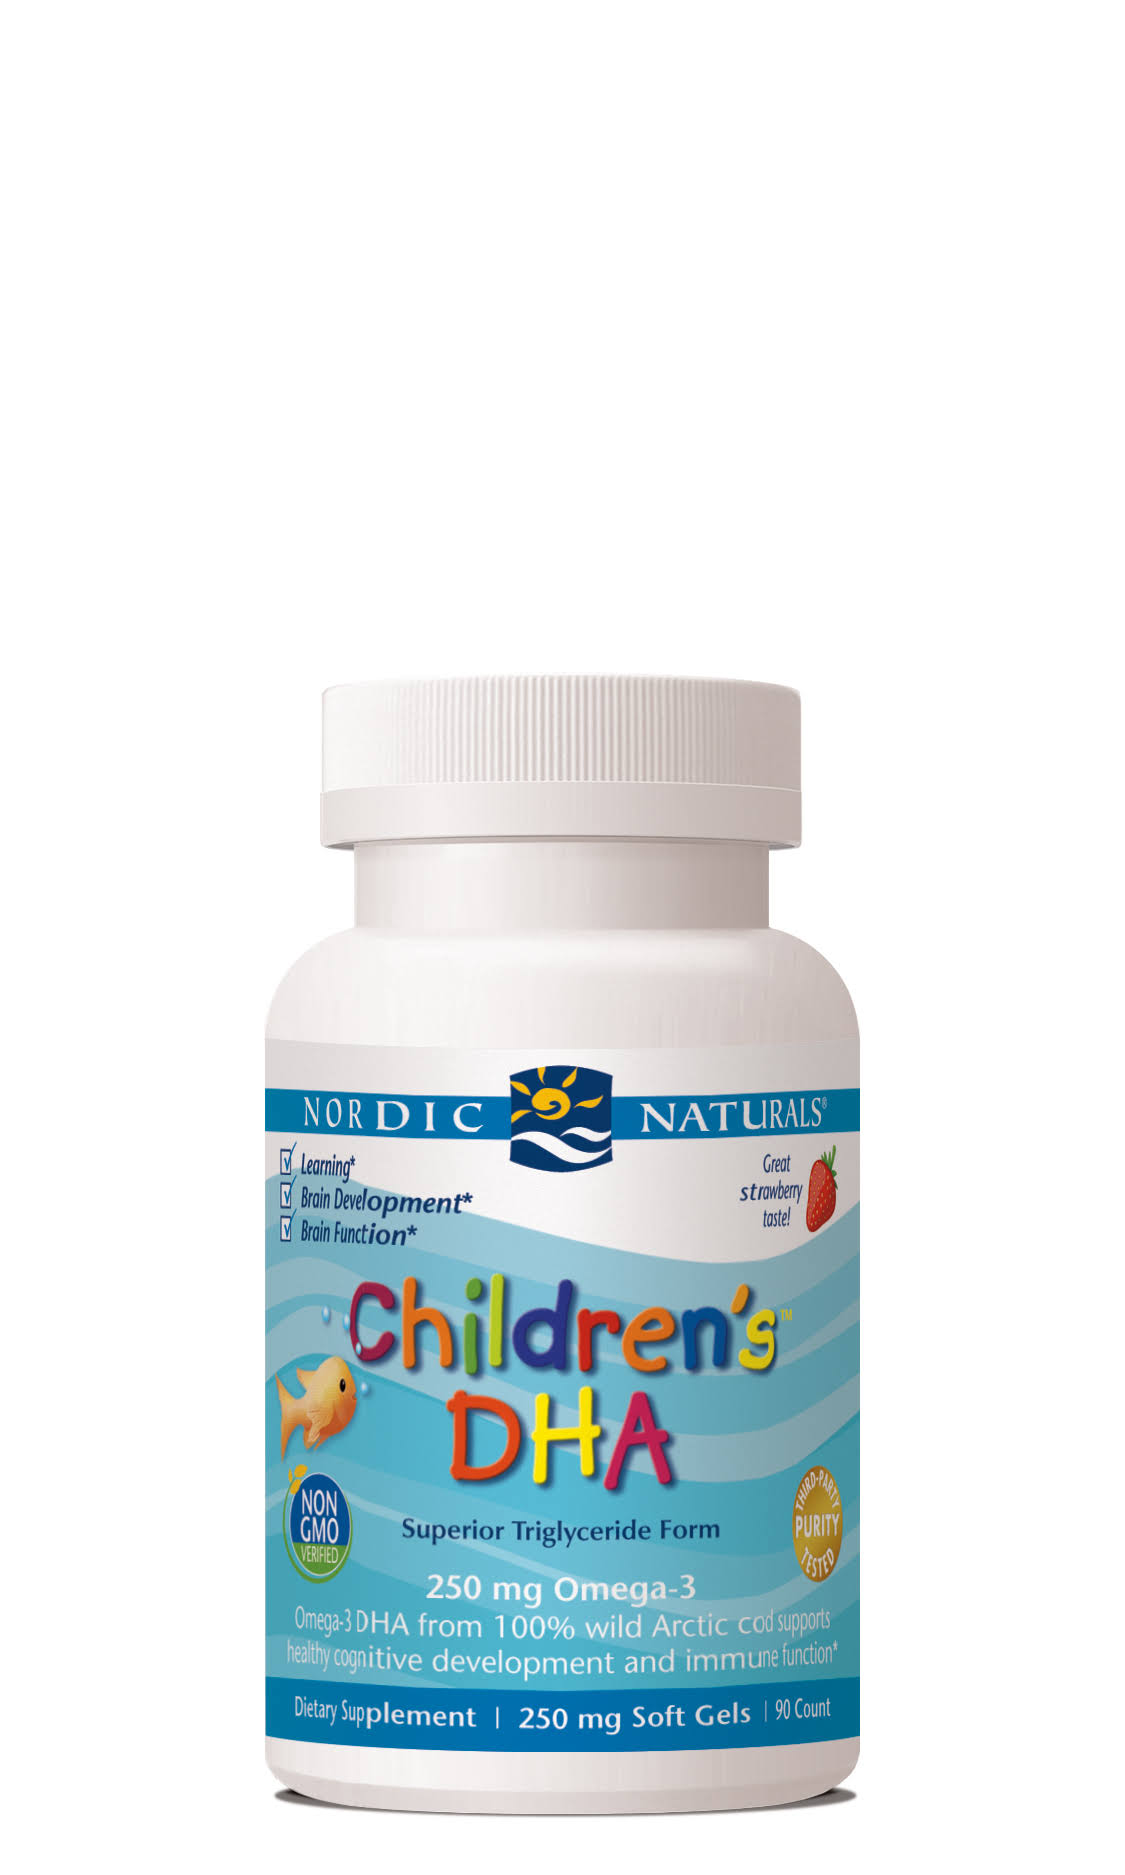 Nordic Naturals Children's DHA 250 mg Dietary Supplement - Strawberry, 90 Softgels